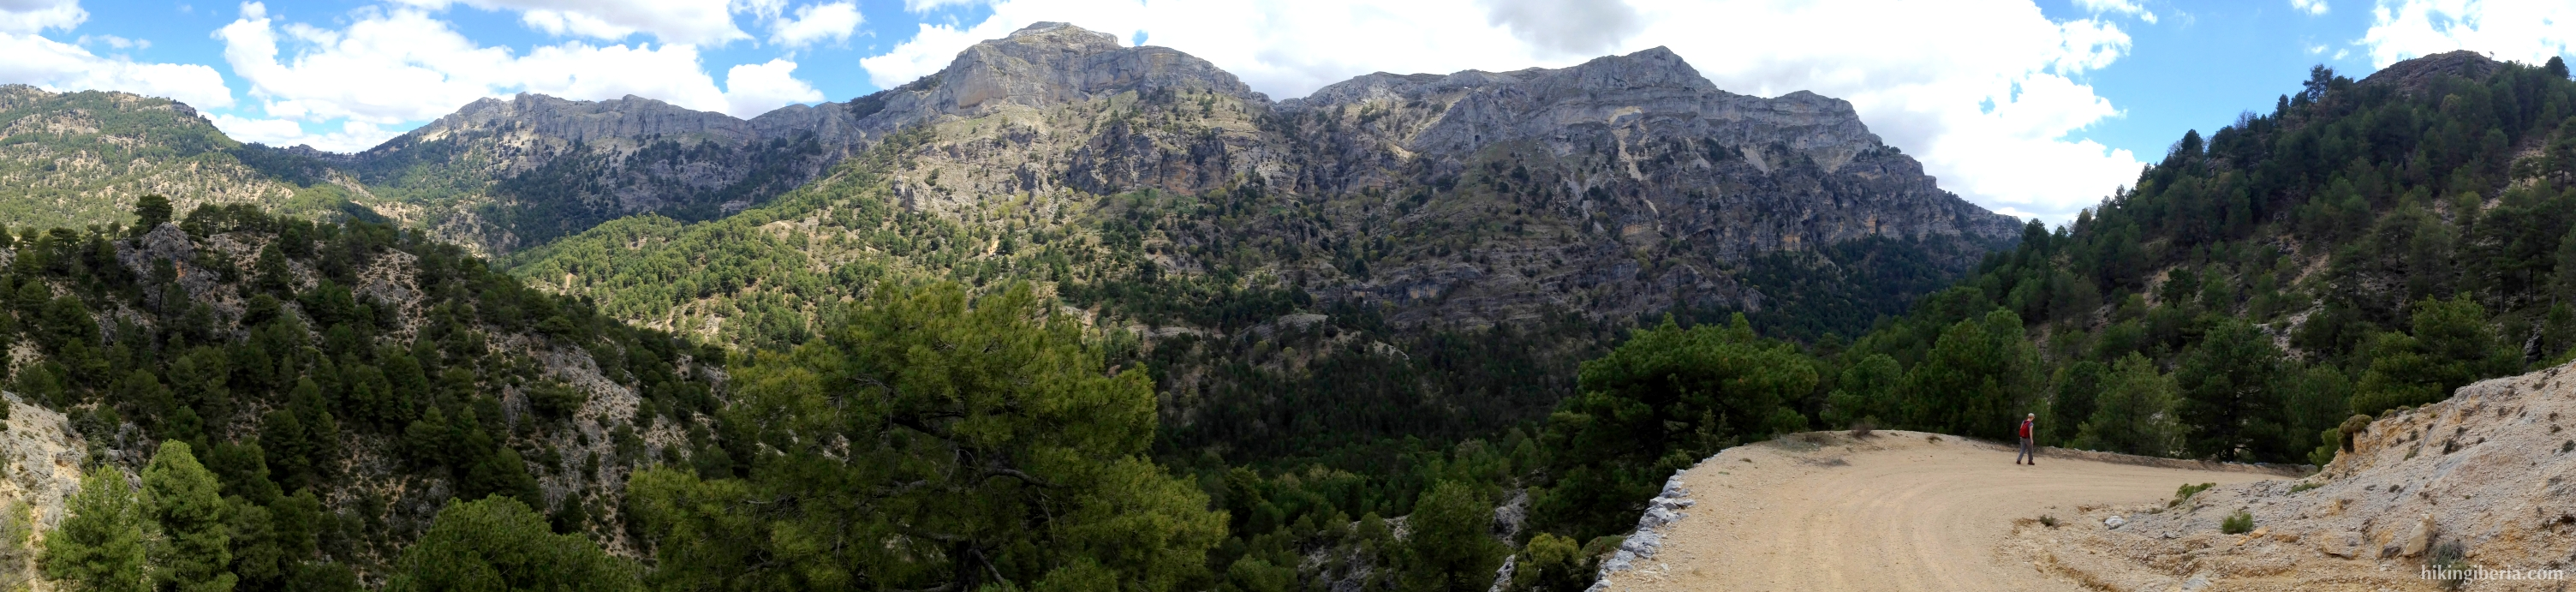 Gorge of the Guadalentín